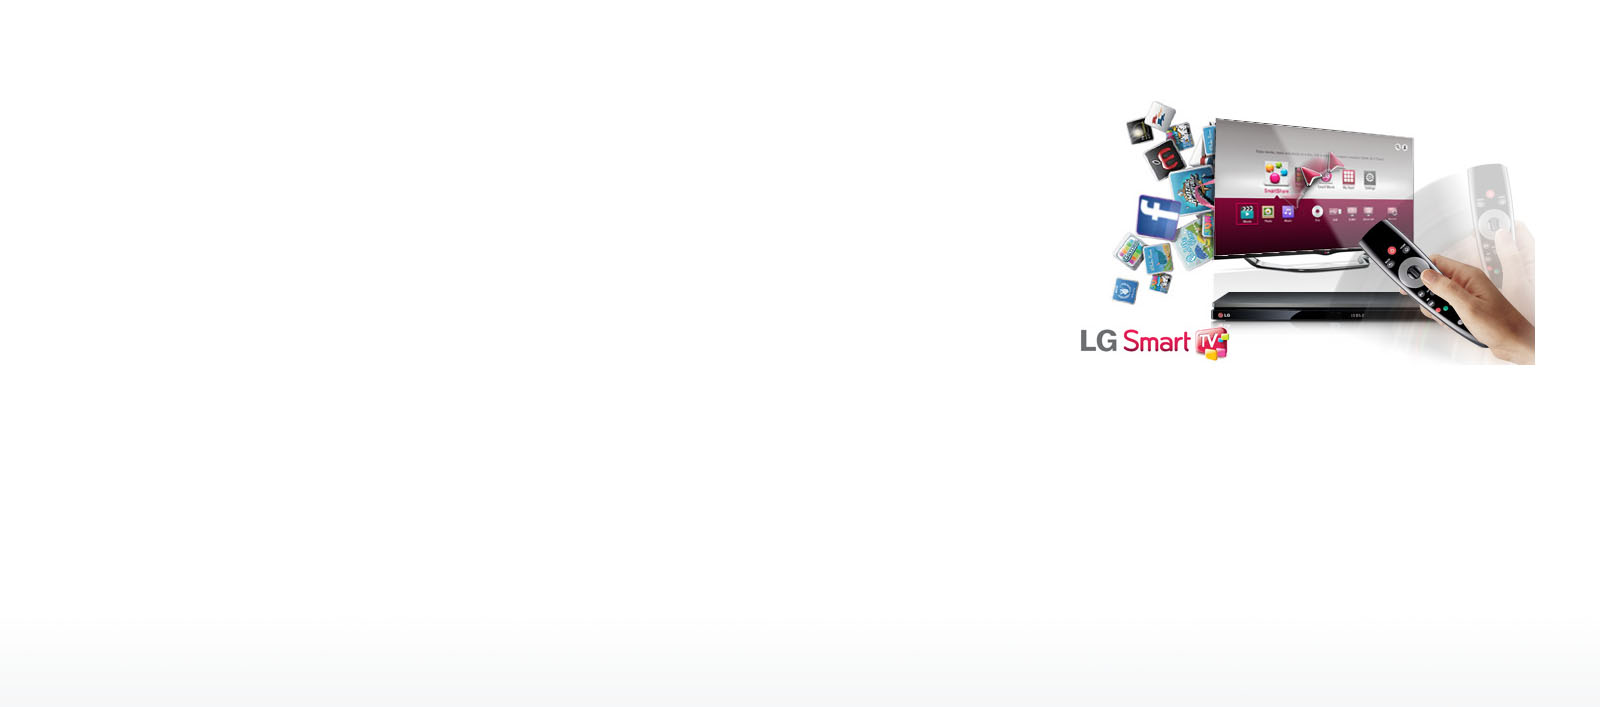 Lg bp730 4k upscaling smart 3d blu ray player with built in wi fi lg smart tv sciox Image collections